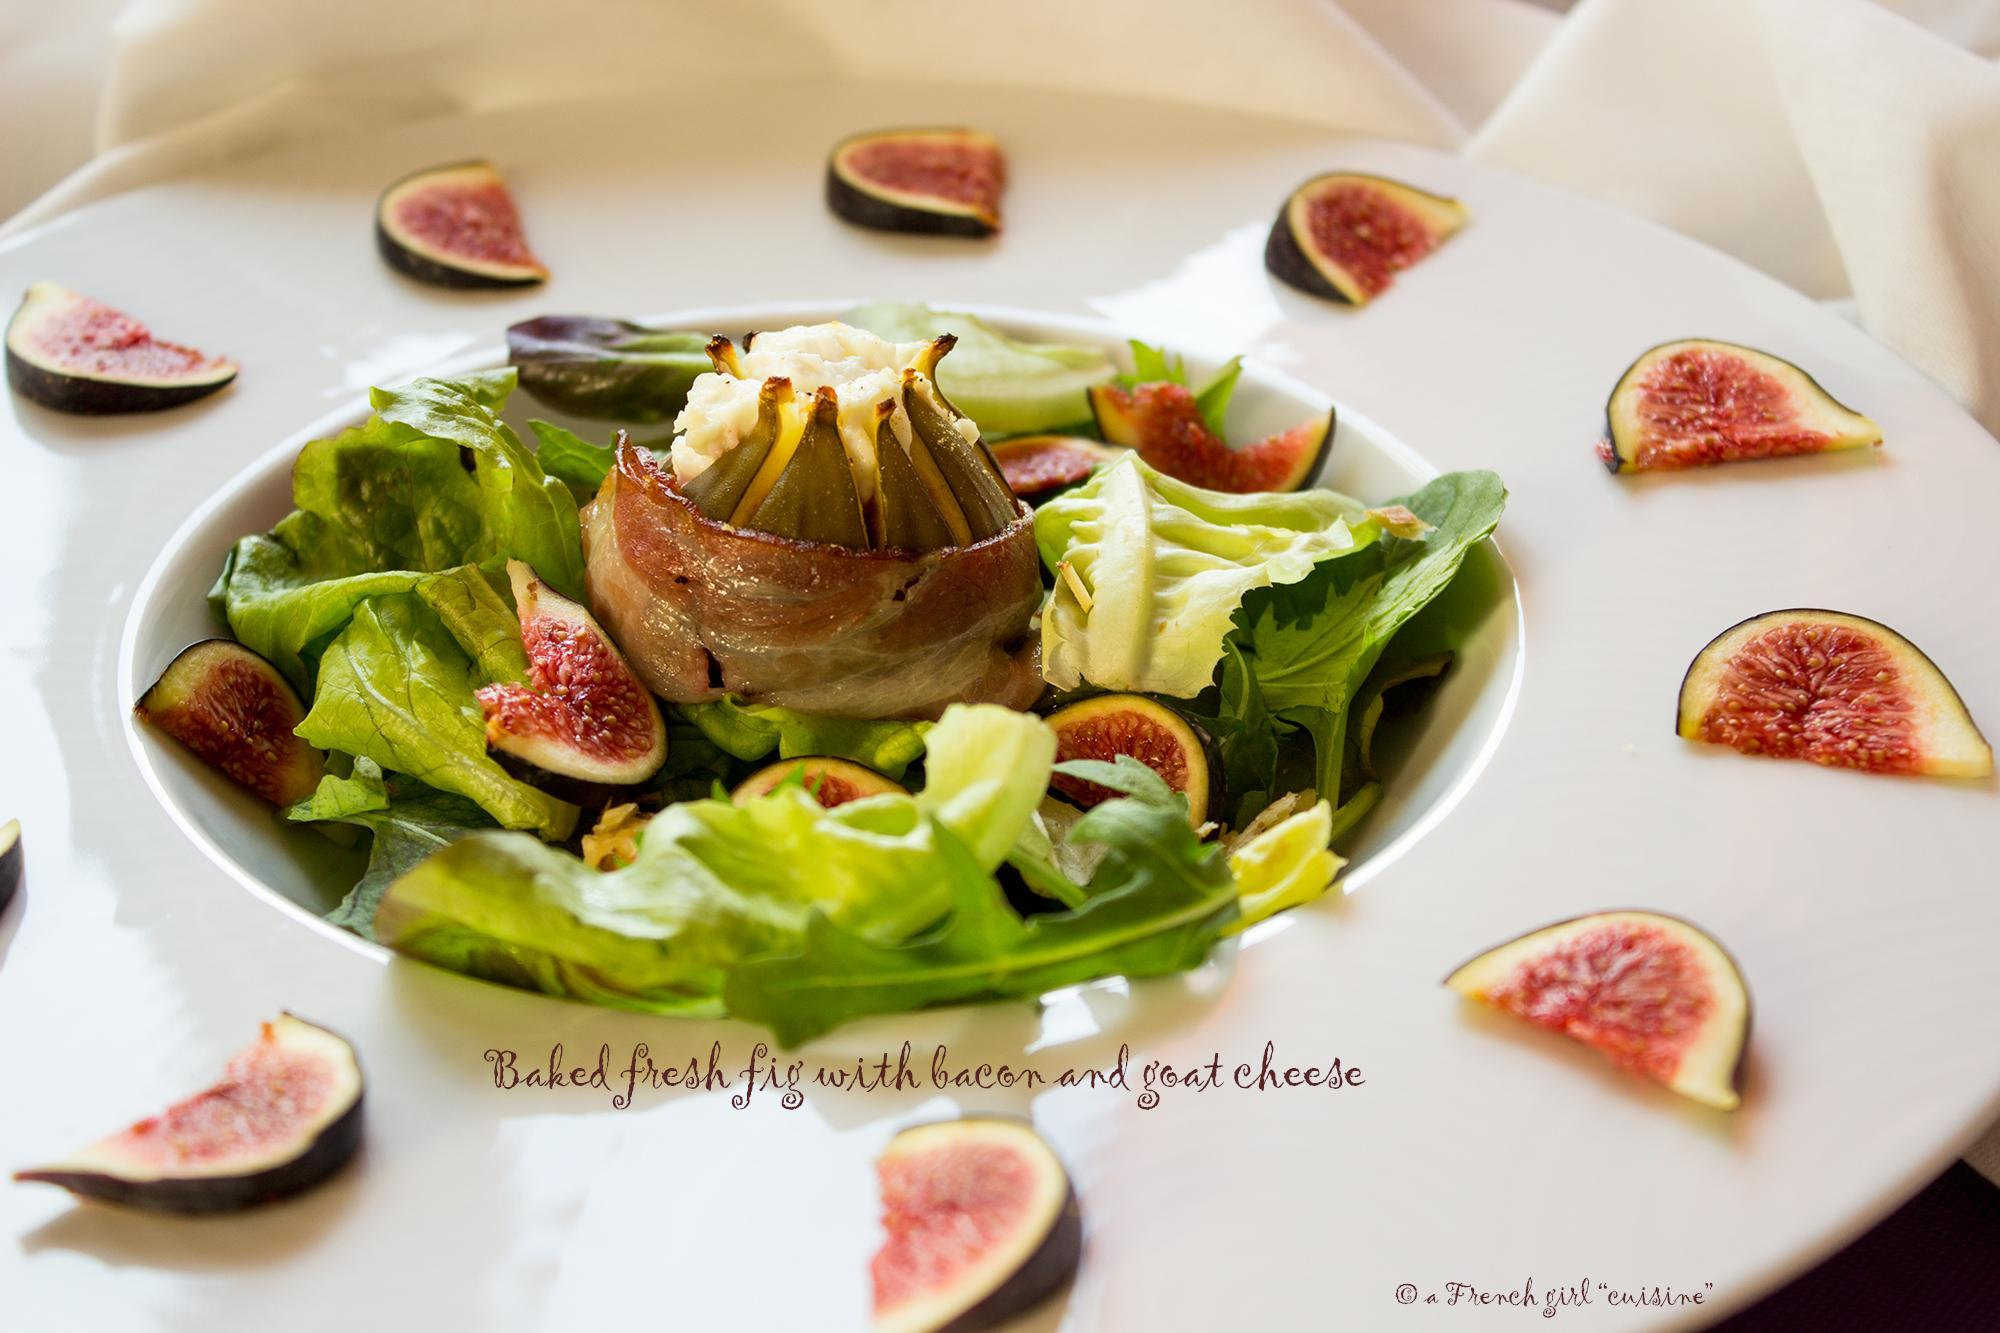 Baked fresh fig with bacon and goat cheese